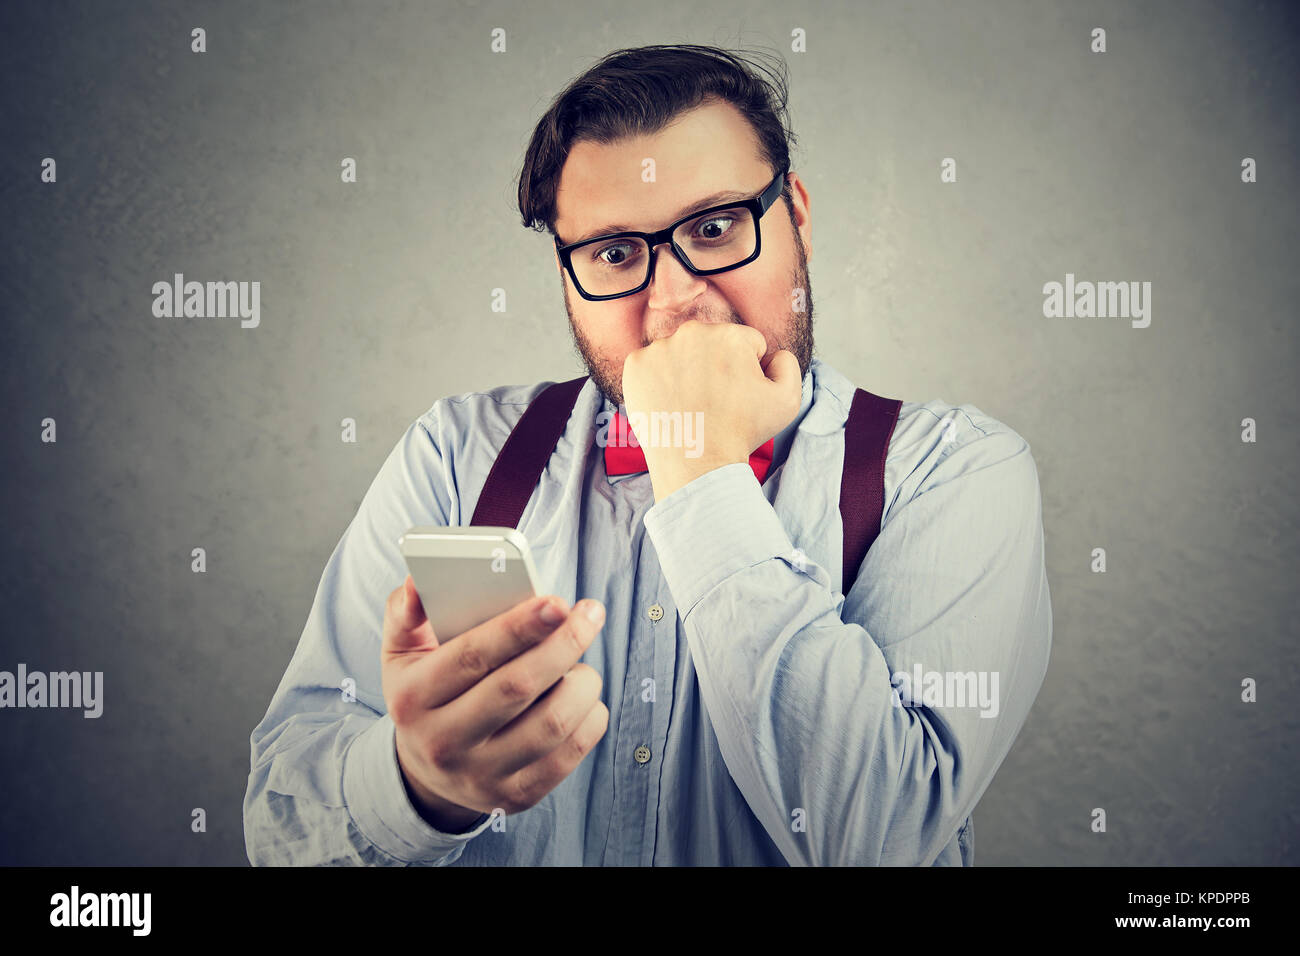 Chubby man in bow-tie looking anxious while watching smartphone and having bad news. - Stock Image